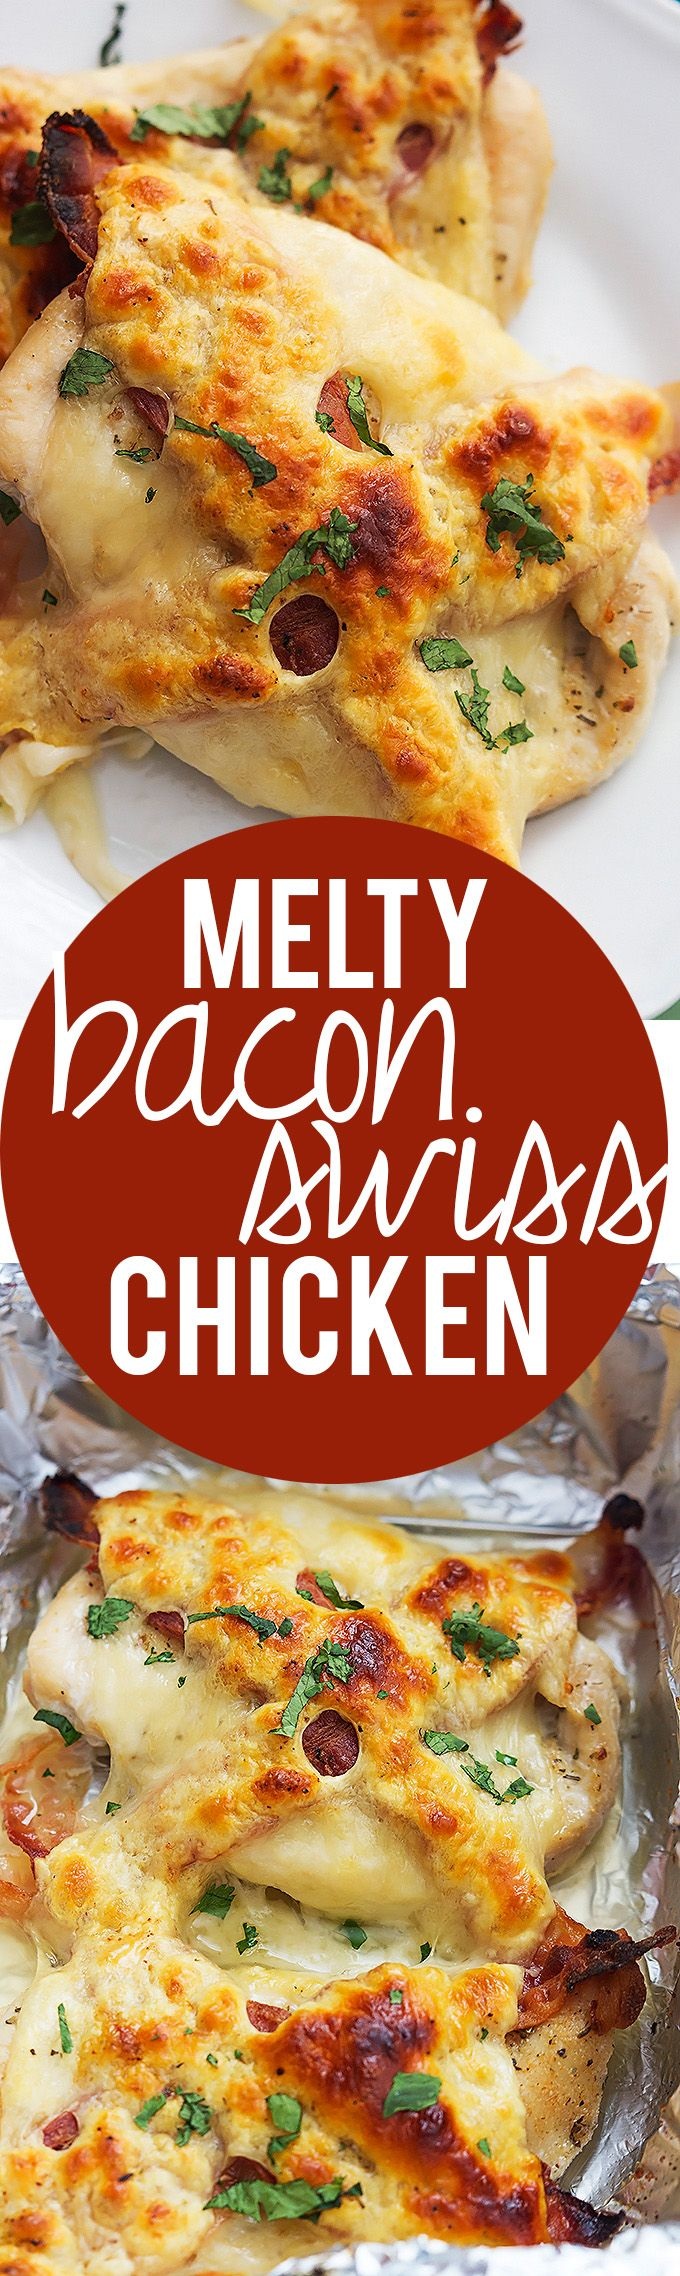 Melty Bacon Swiss Chicken - 6 ingredients and ready in 30 minutes! | Creme de la Crumb